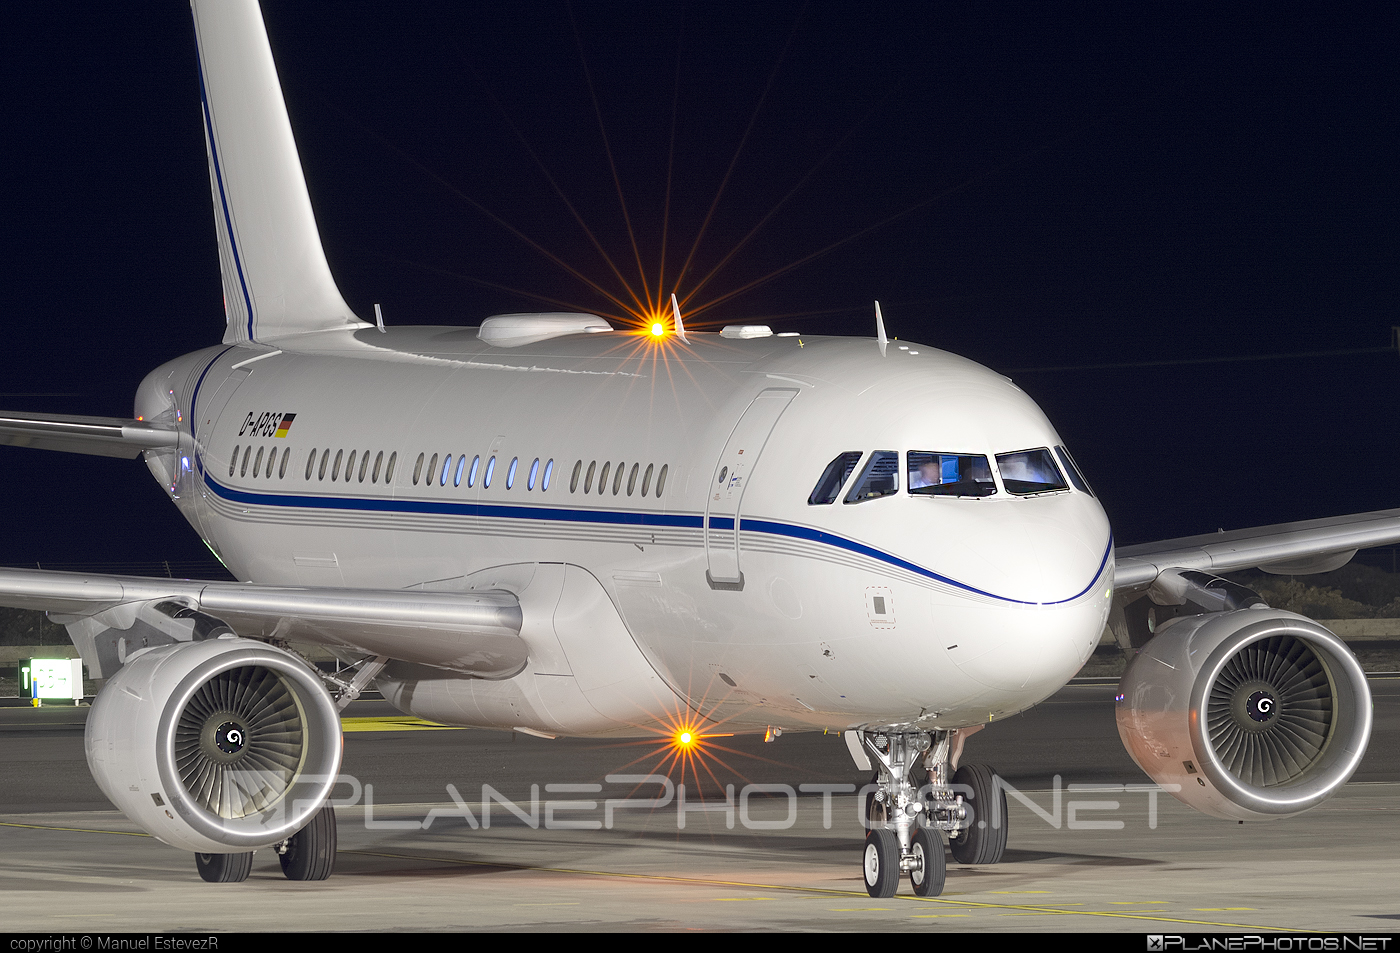 Airbus ACJ319-115 - D-APGS operated by K5-Aviation #acj319 #acj319115 #airbus #airbuscorporatejet #k5aviation